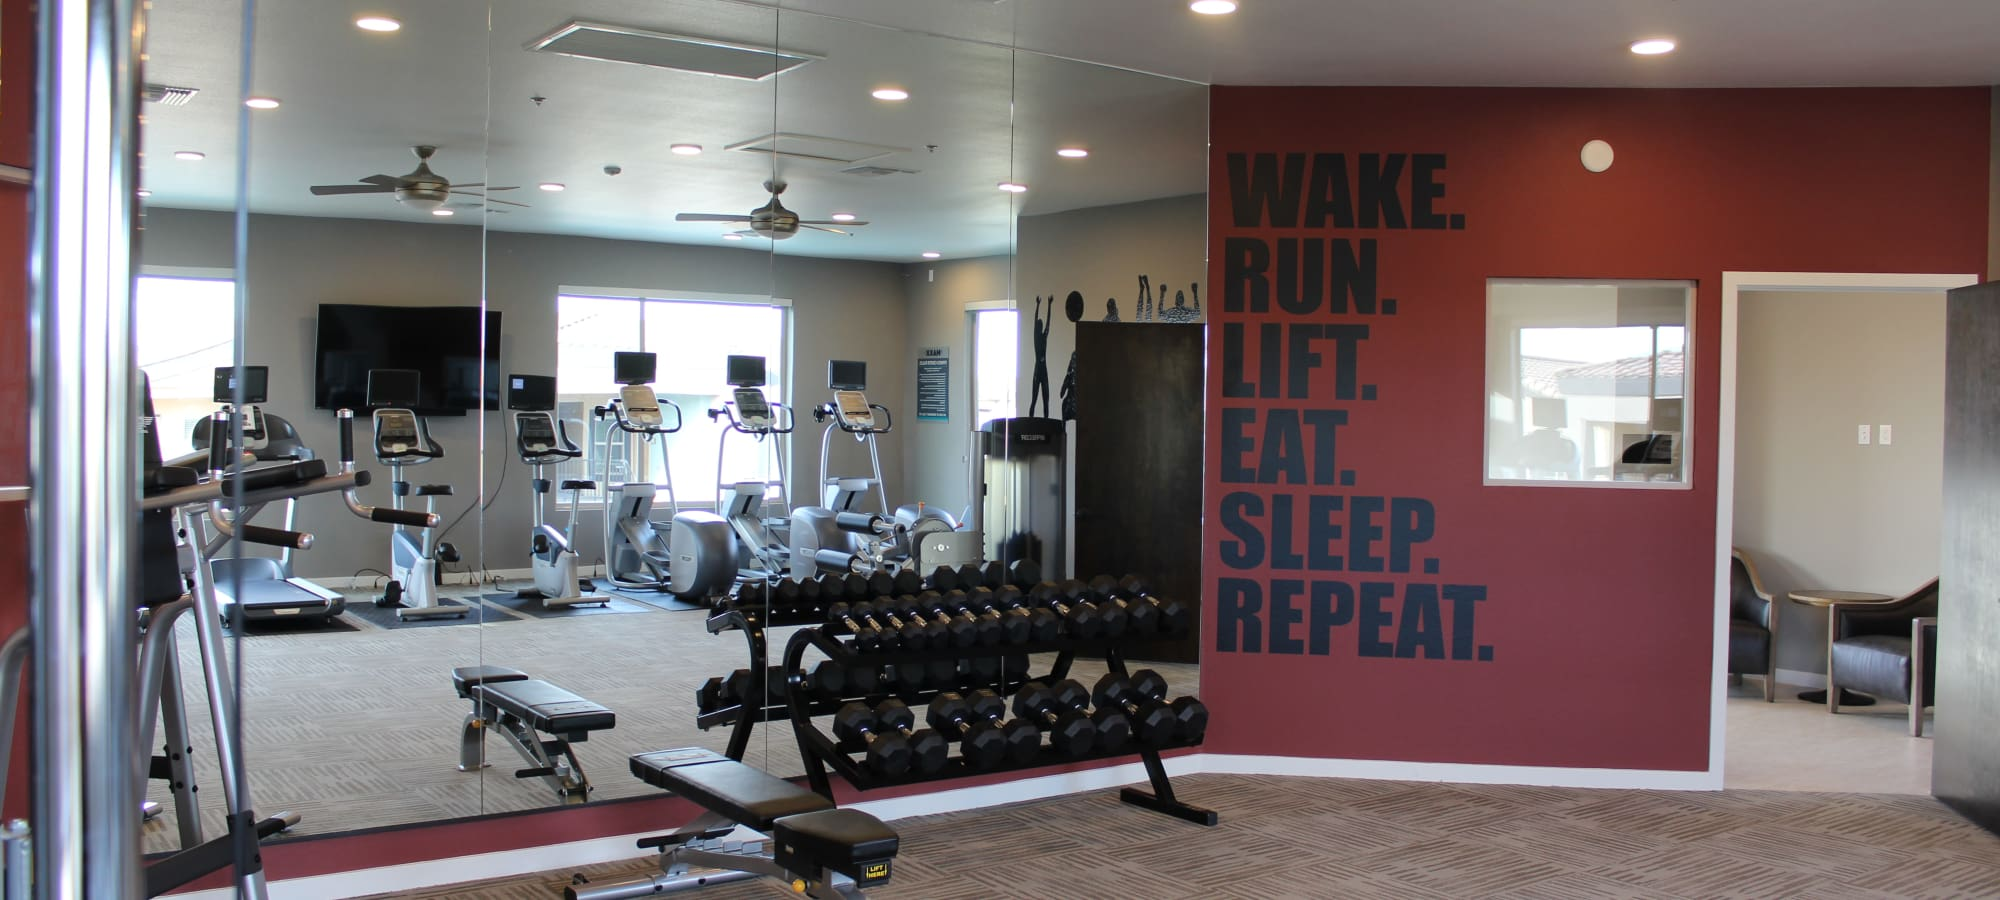 Gym with inspiring quote on the wall at The Maxx 159 in Goodyear, Arizona